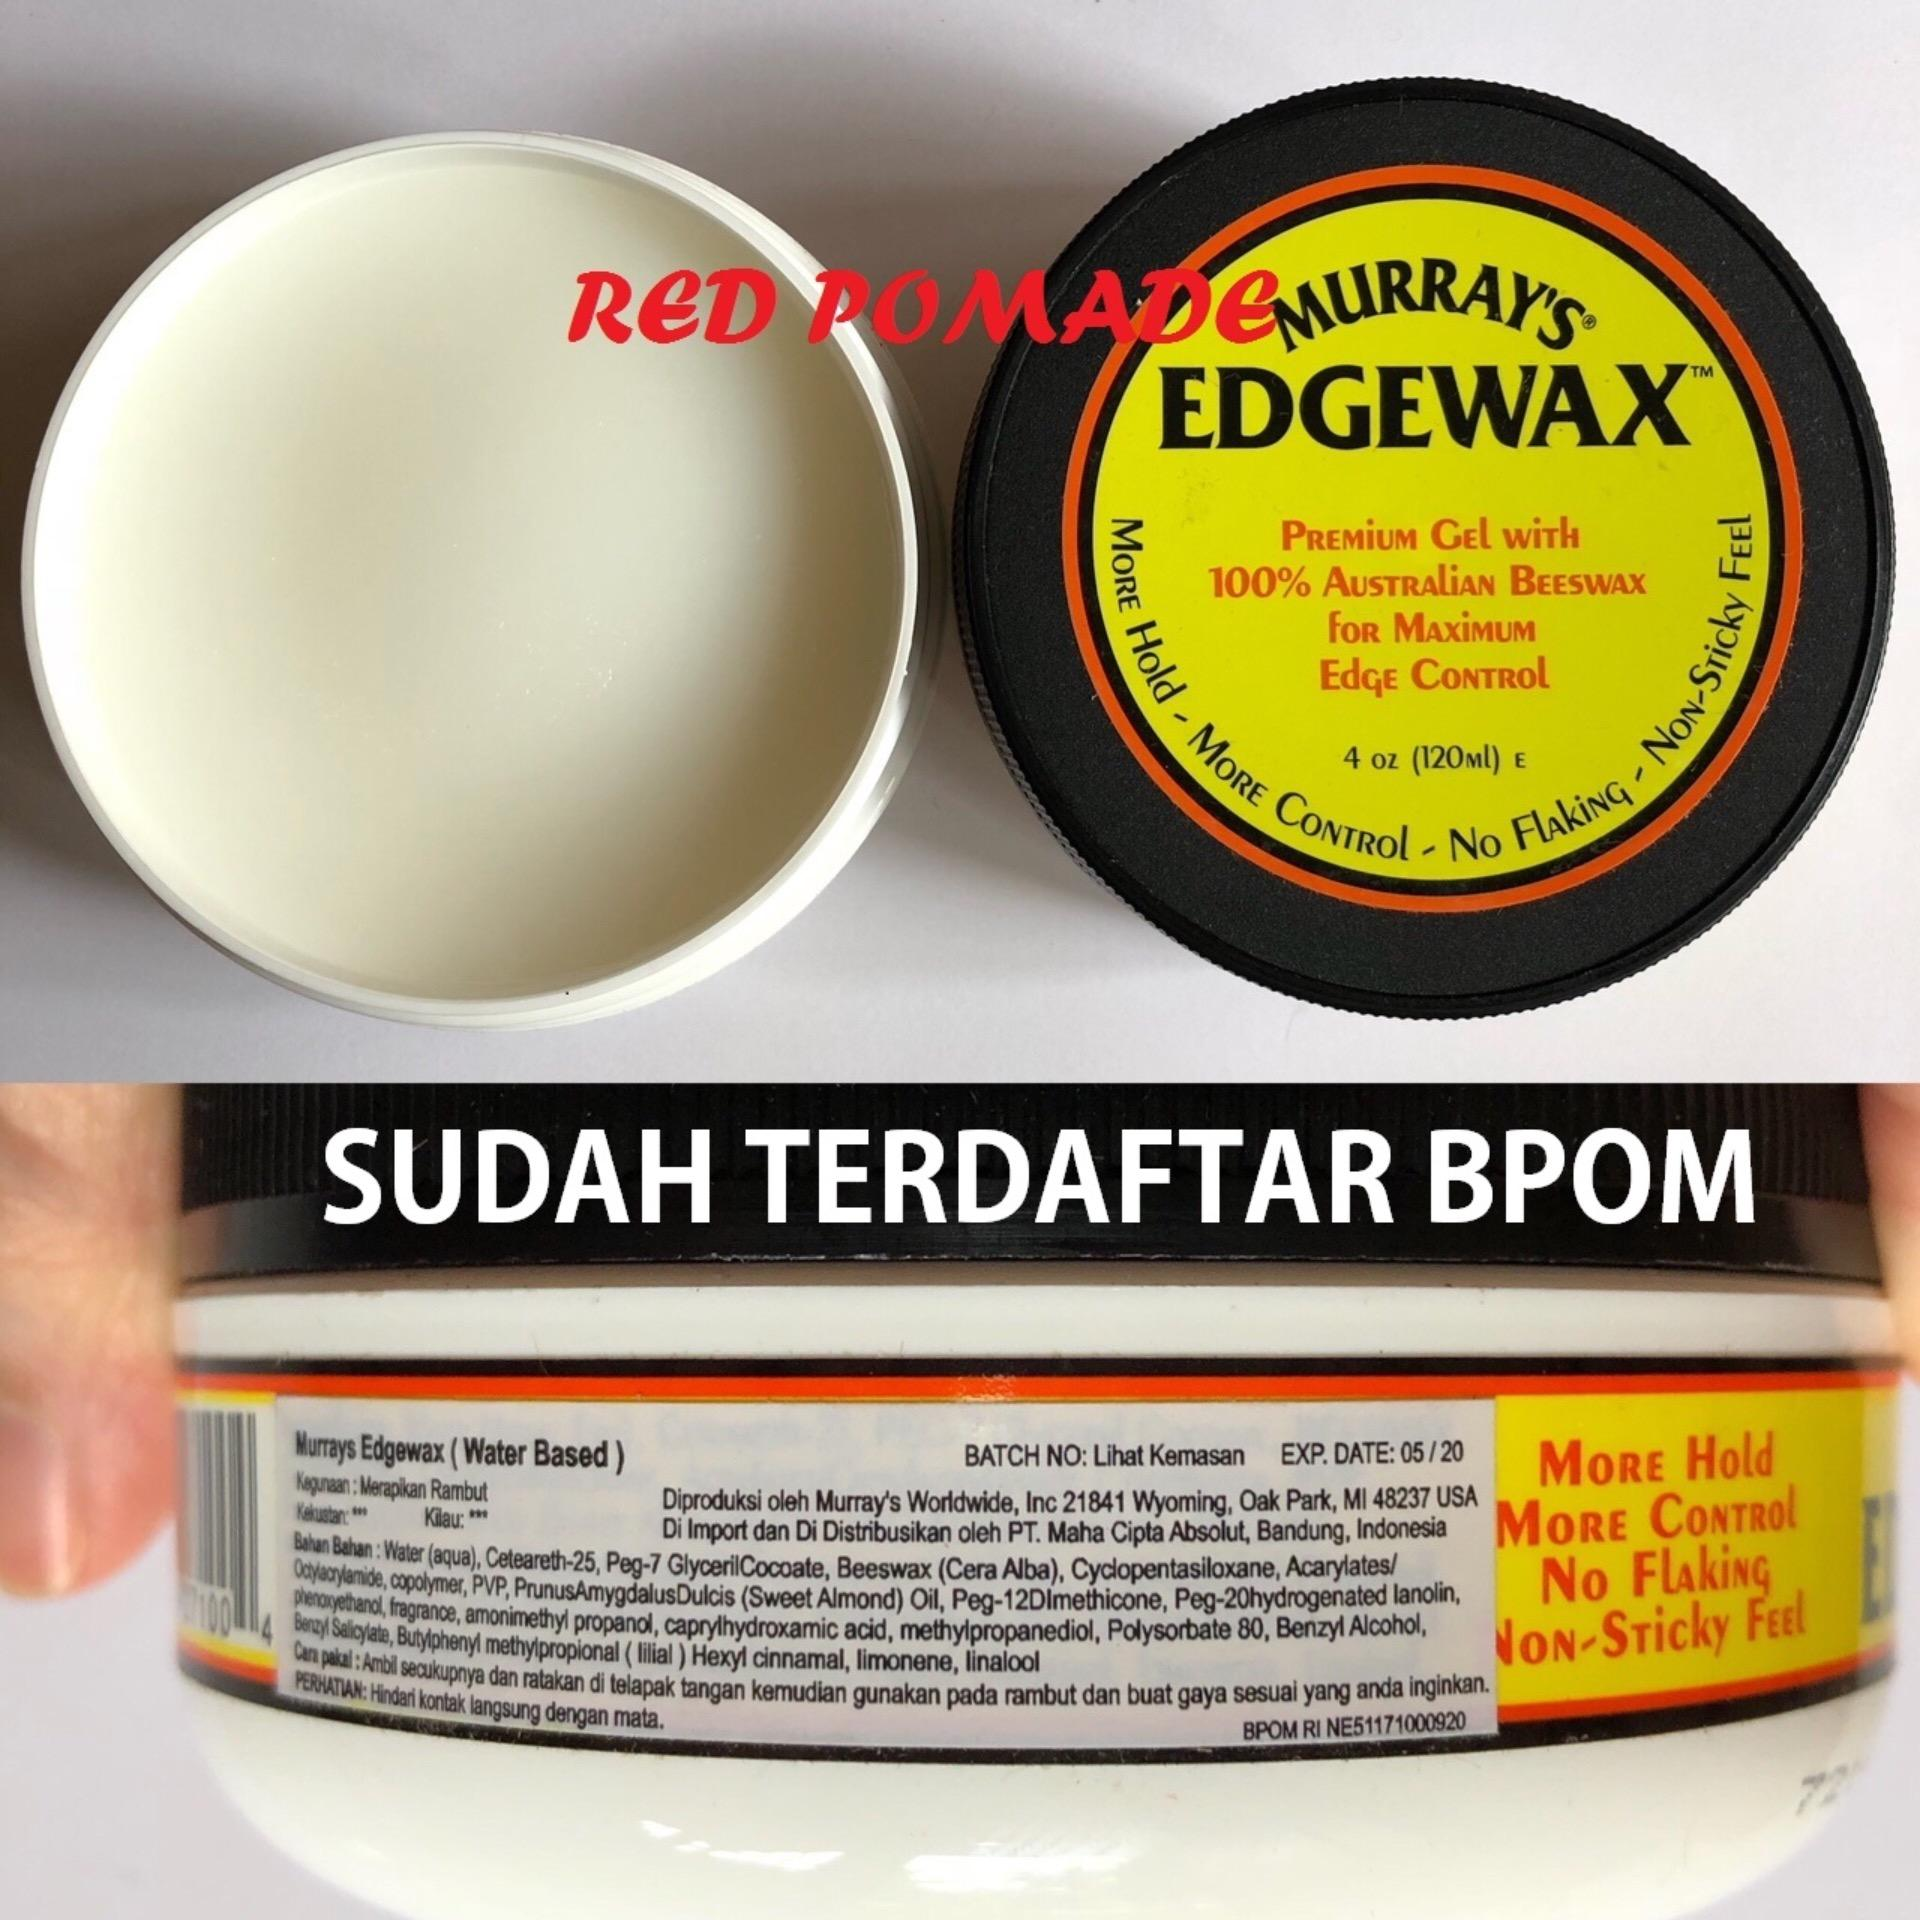 Pomade Murray's Murrays Edgewax Waterbased 4 Oz Sudah BPOM + Free Sisir Saku